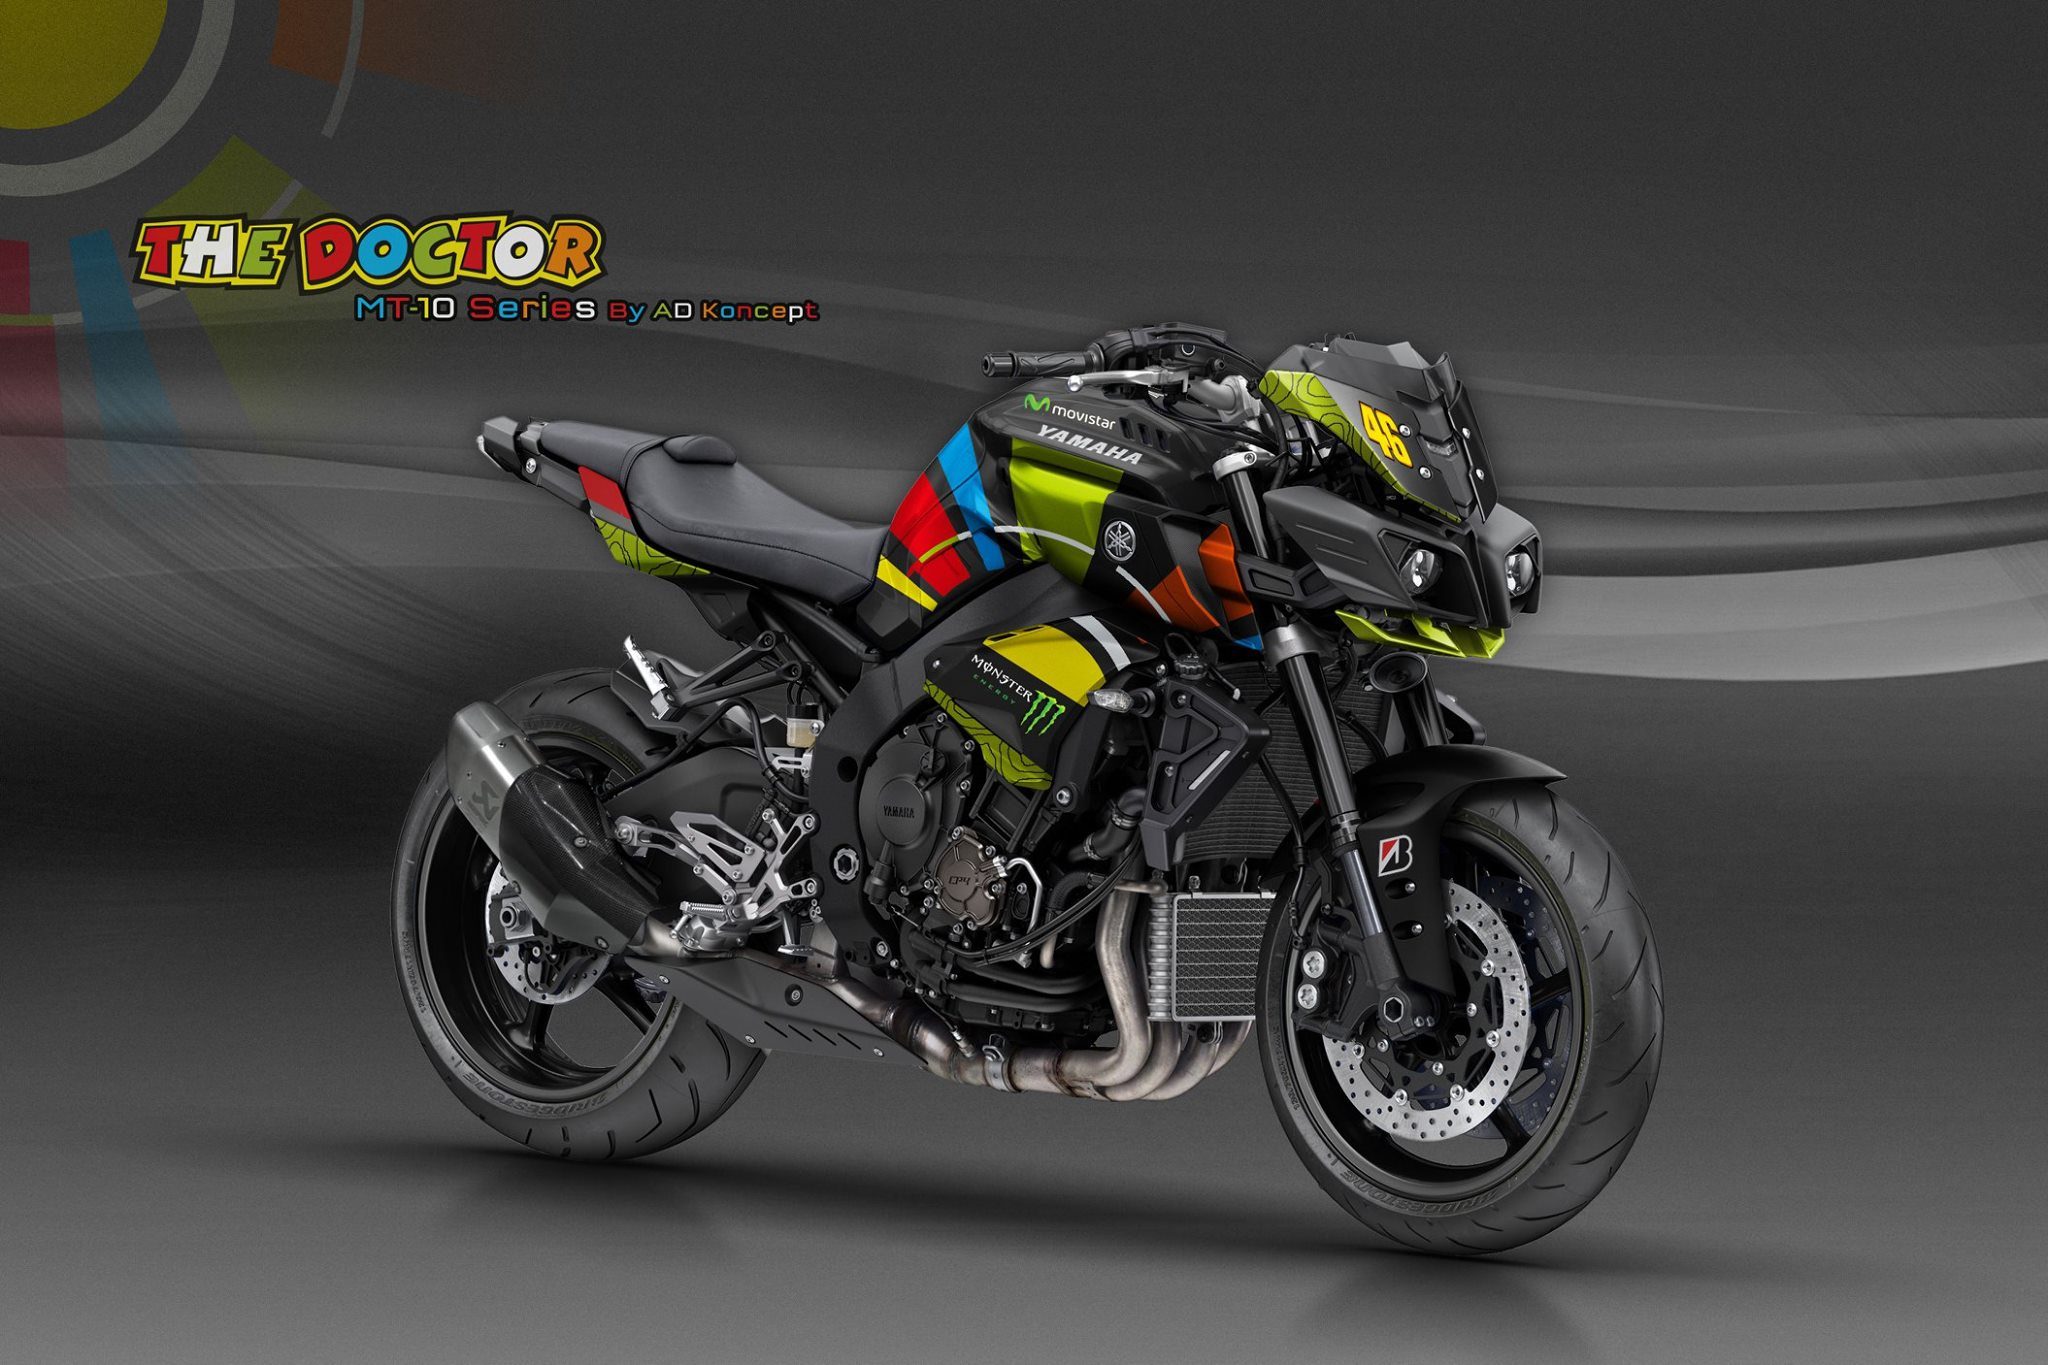 yamaha mt10 in valentino rossi livery and more from ad